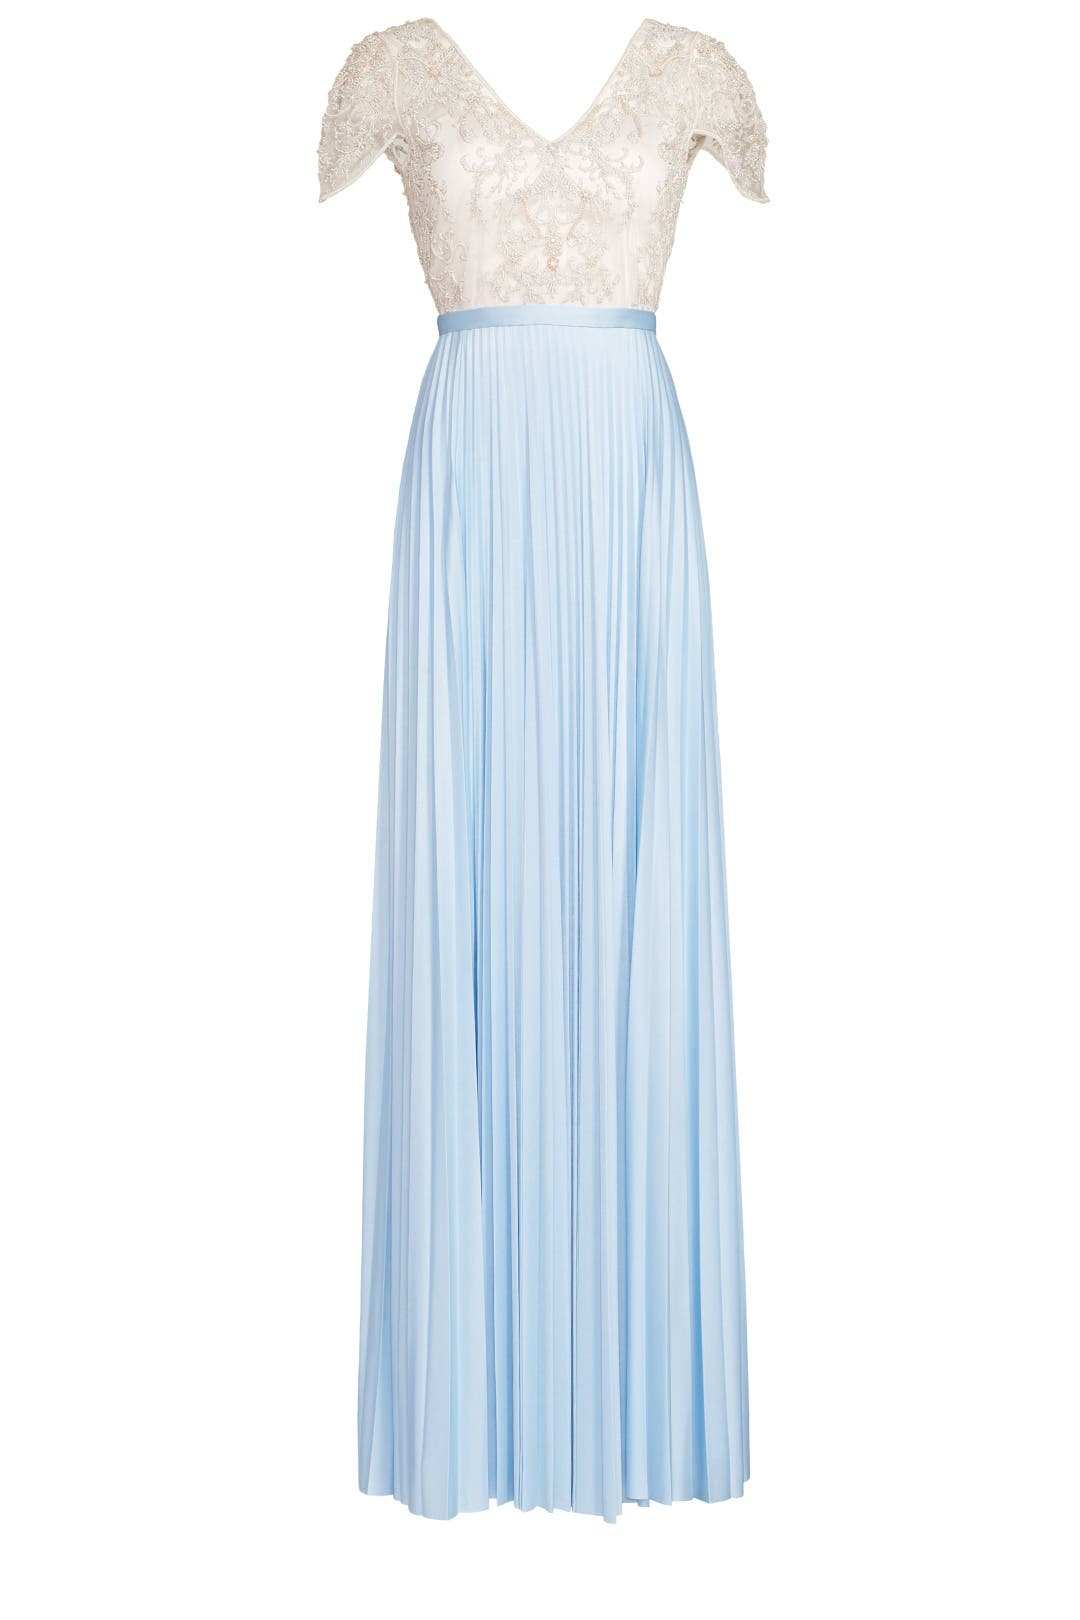 Brandie Gown by CATHERINE DEANE